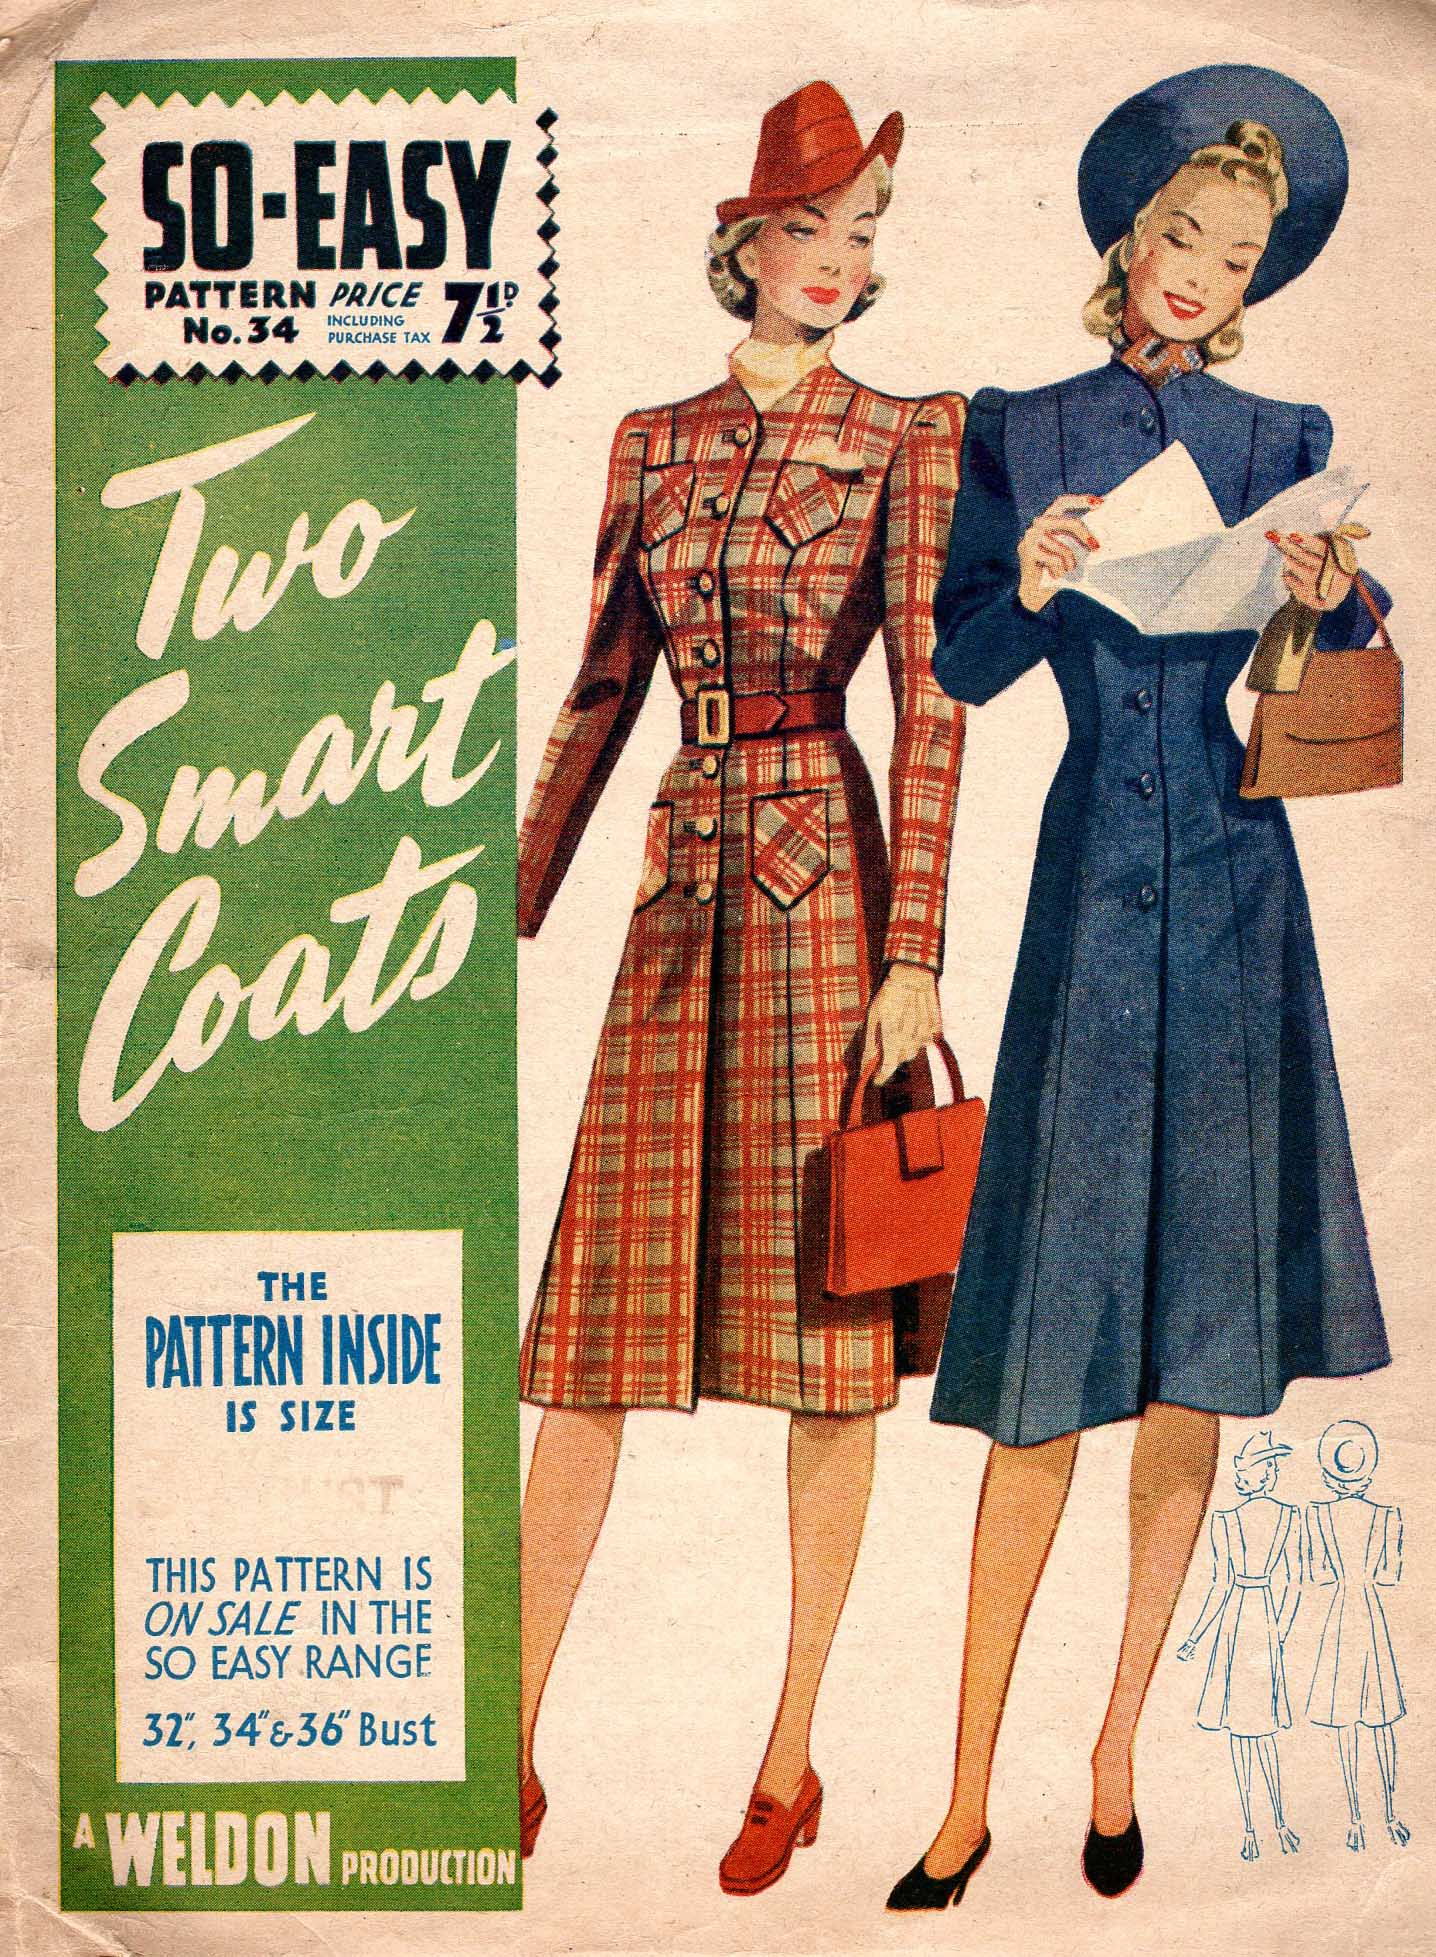 1940s English coat pattern - Weldon's So-Easy 34